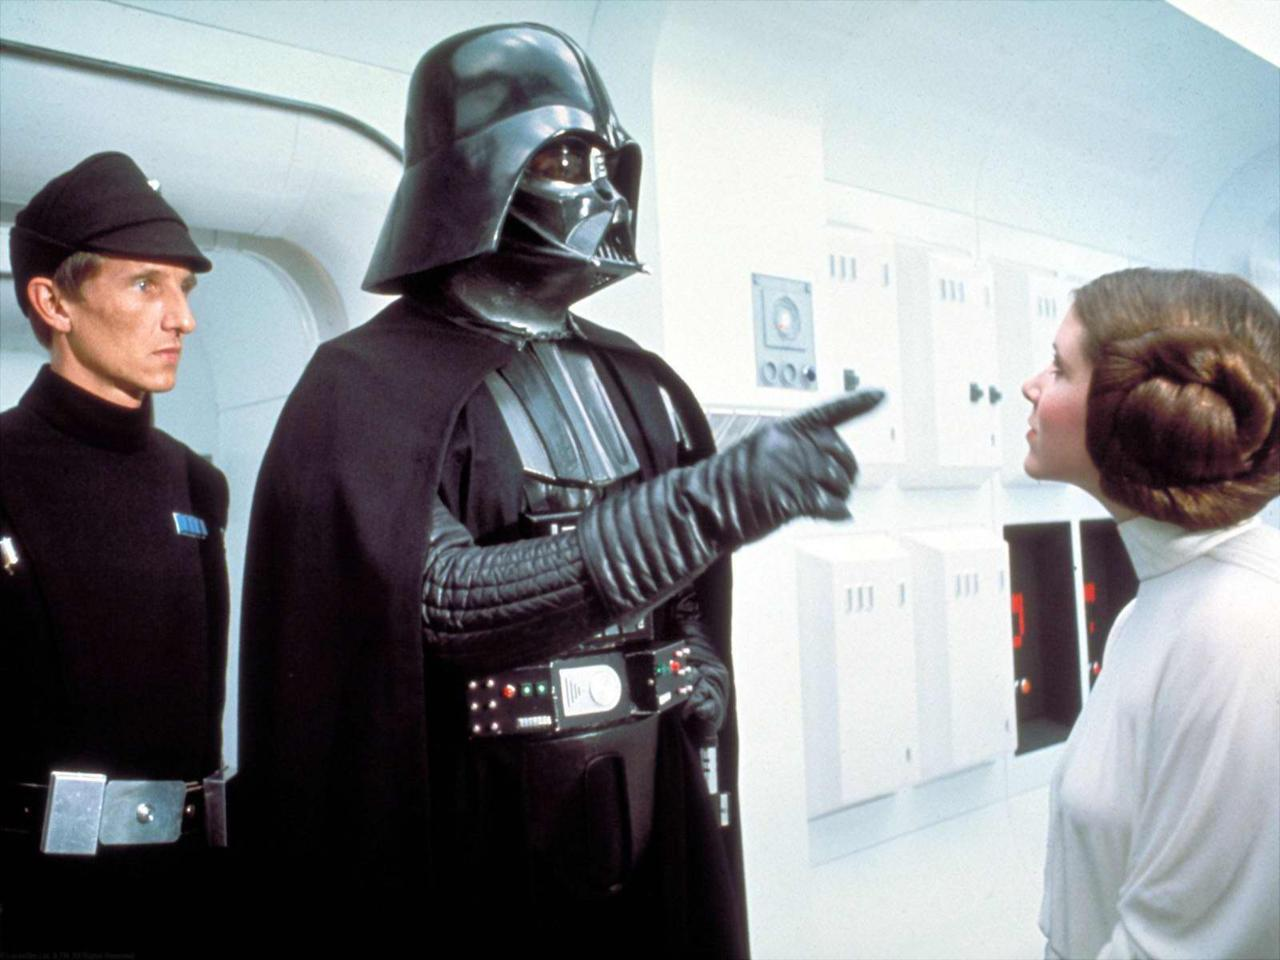 Who was the original commander of the Death Star?